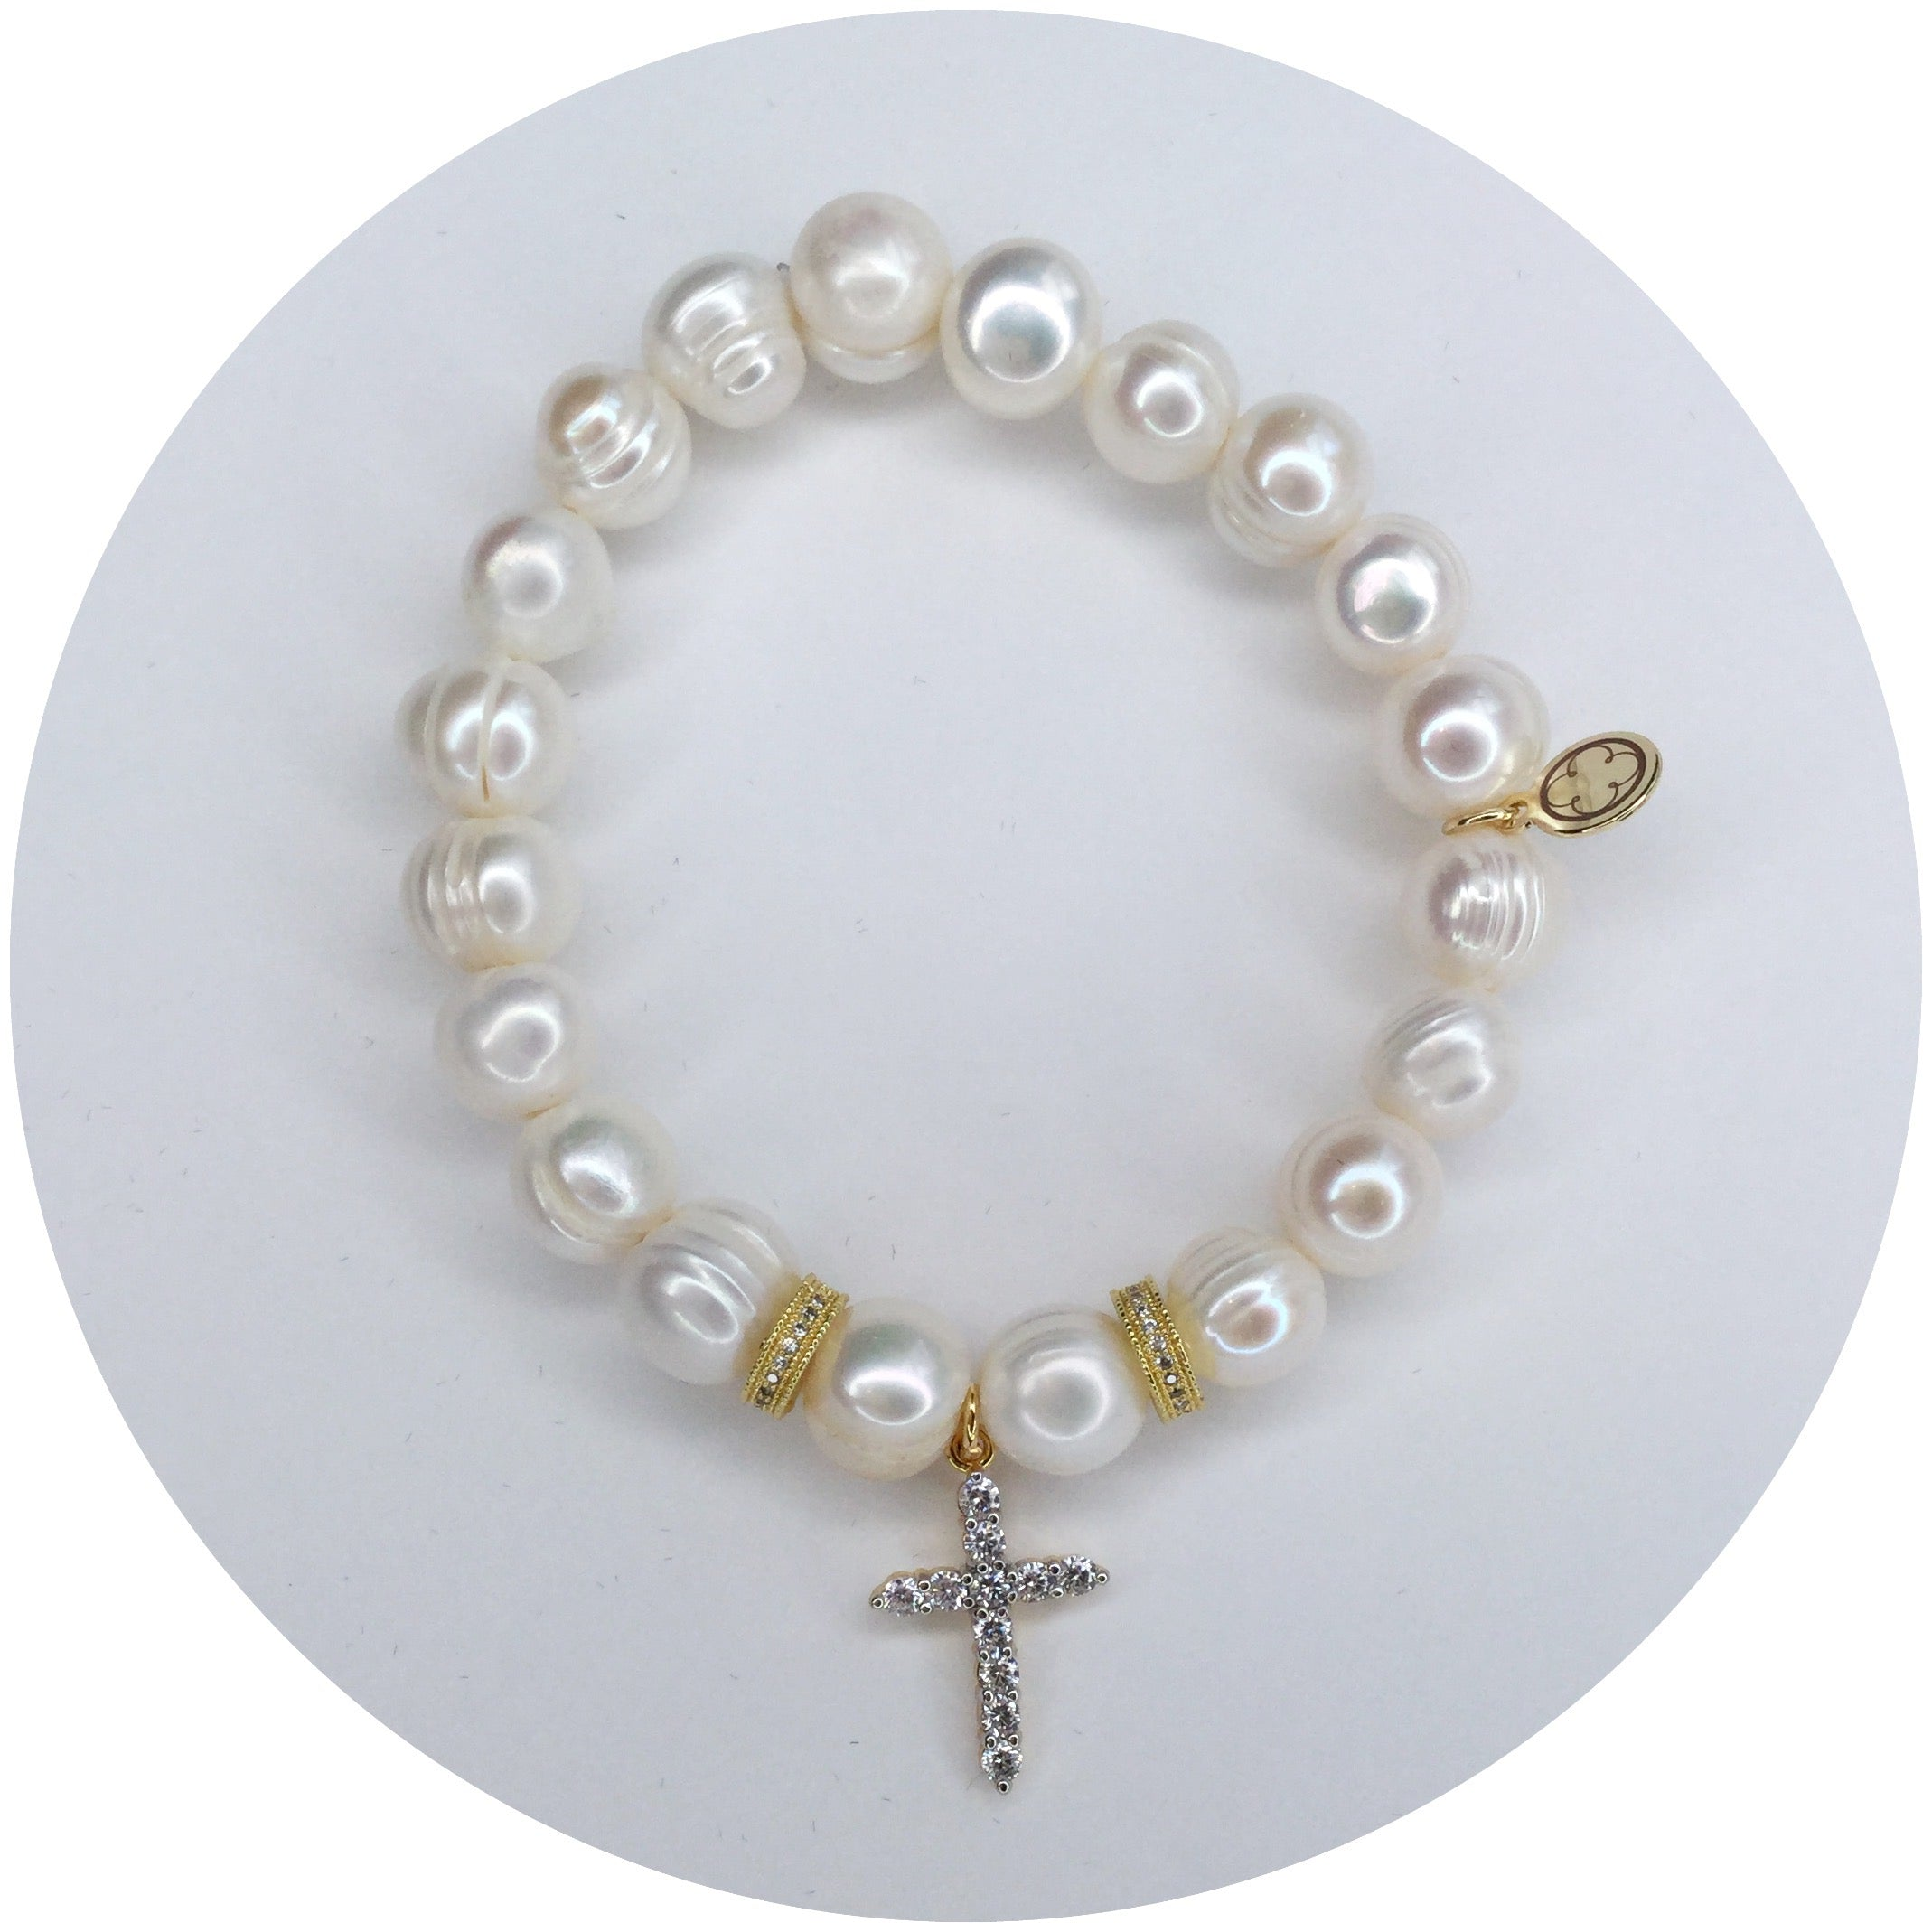 Children's Freshwater Pearls with Pavé Cross Pendant - Oriana Lamarca LLC